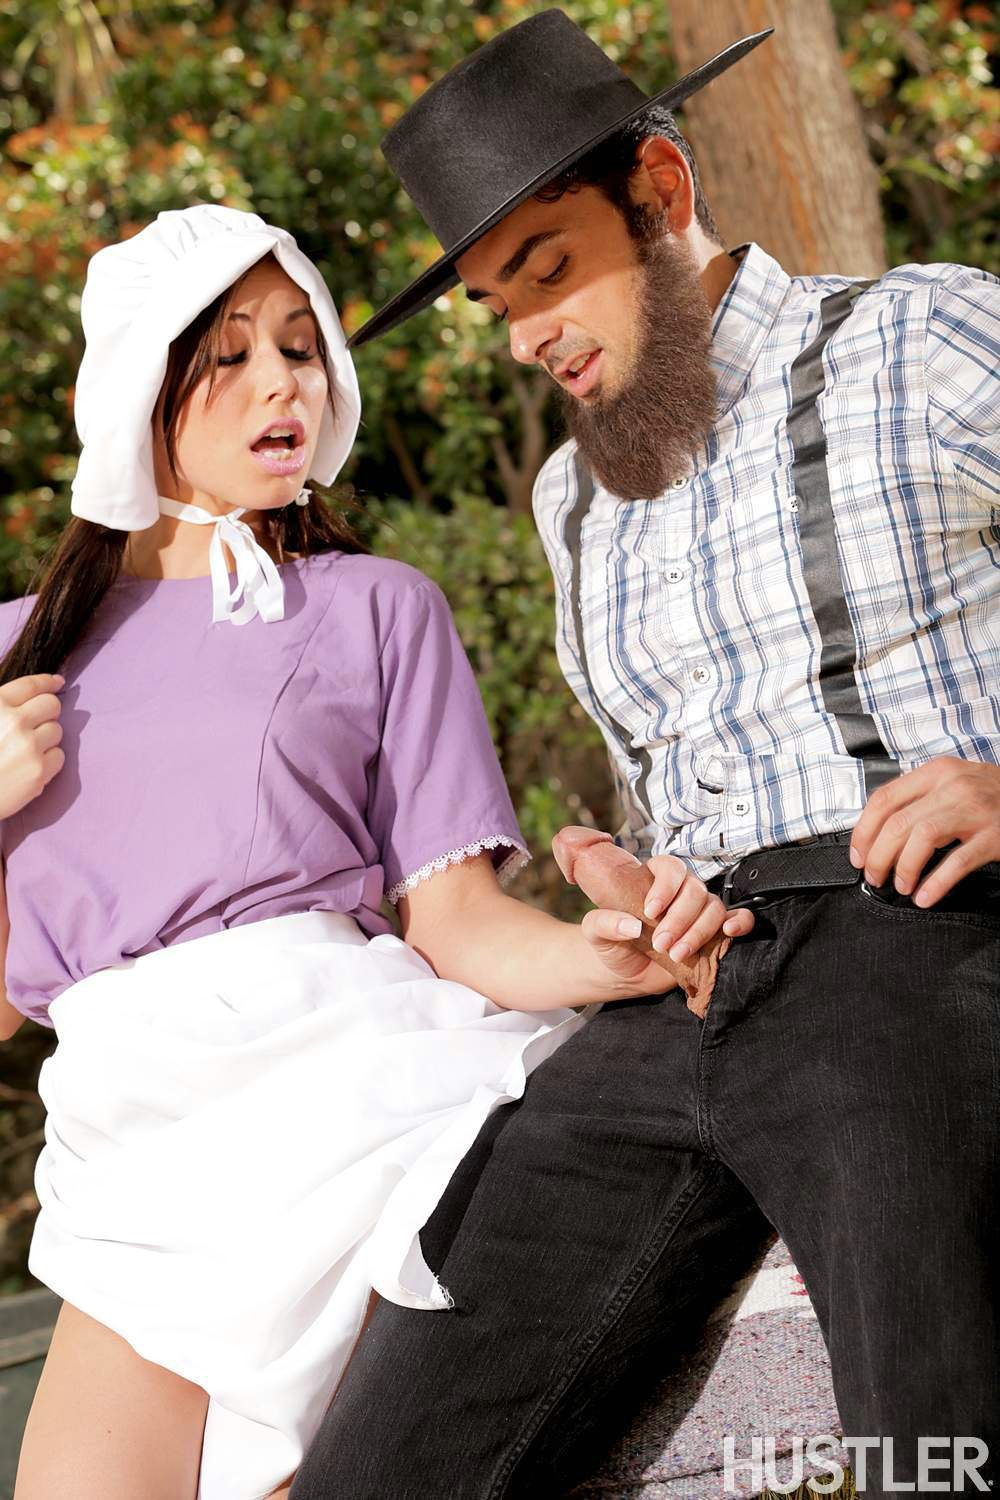 Theme amish getting fucked